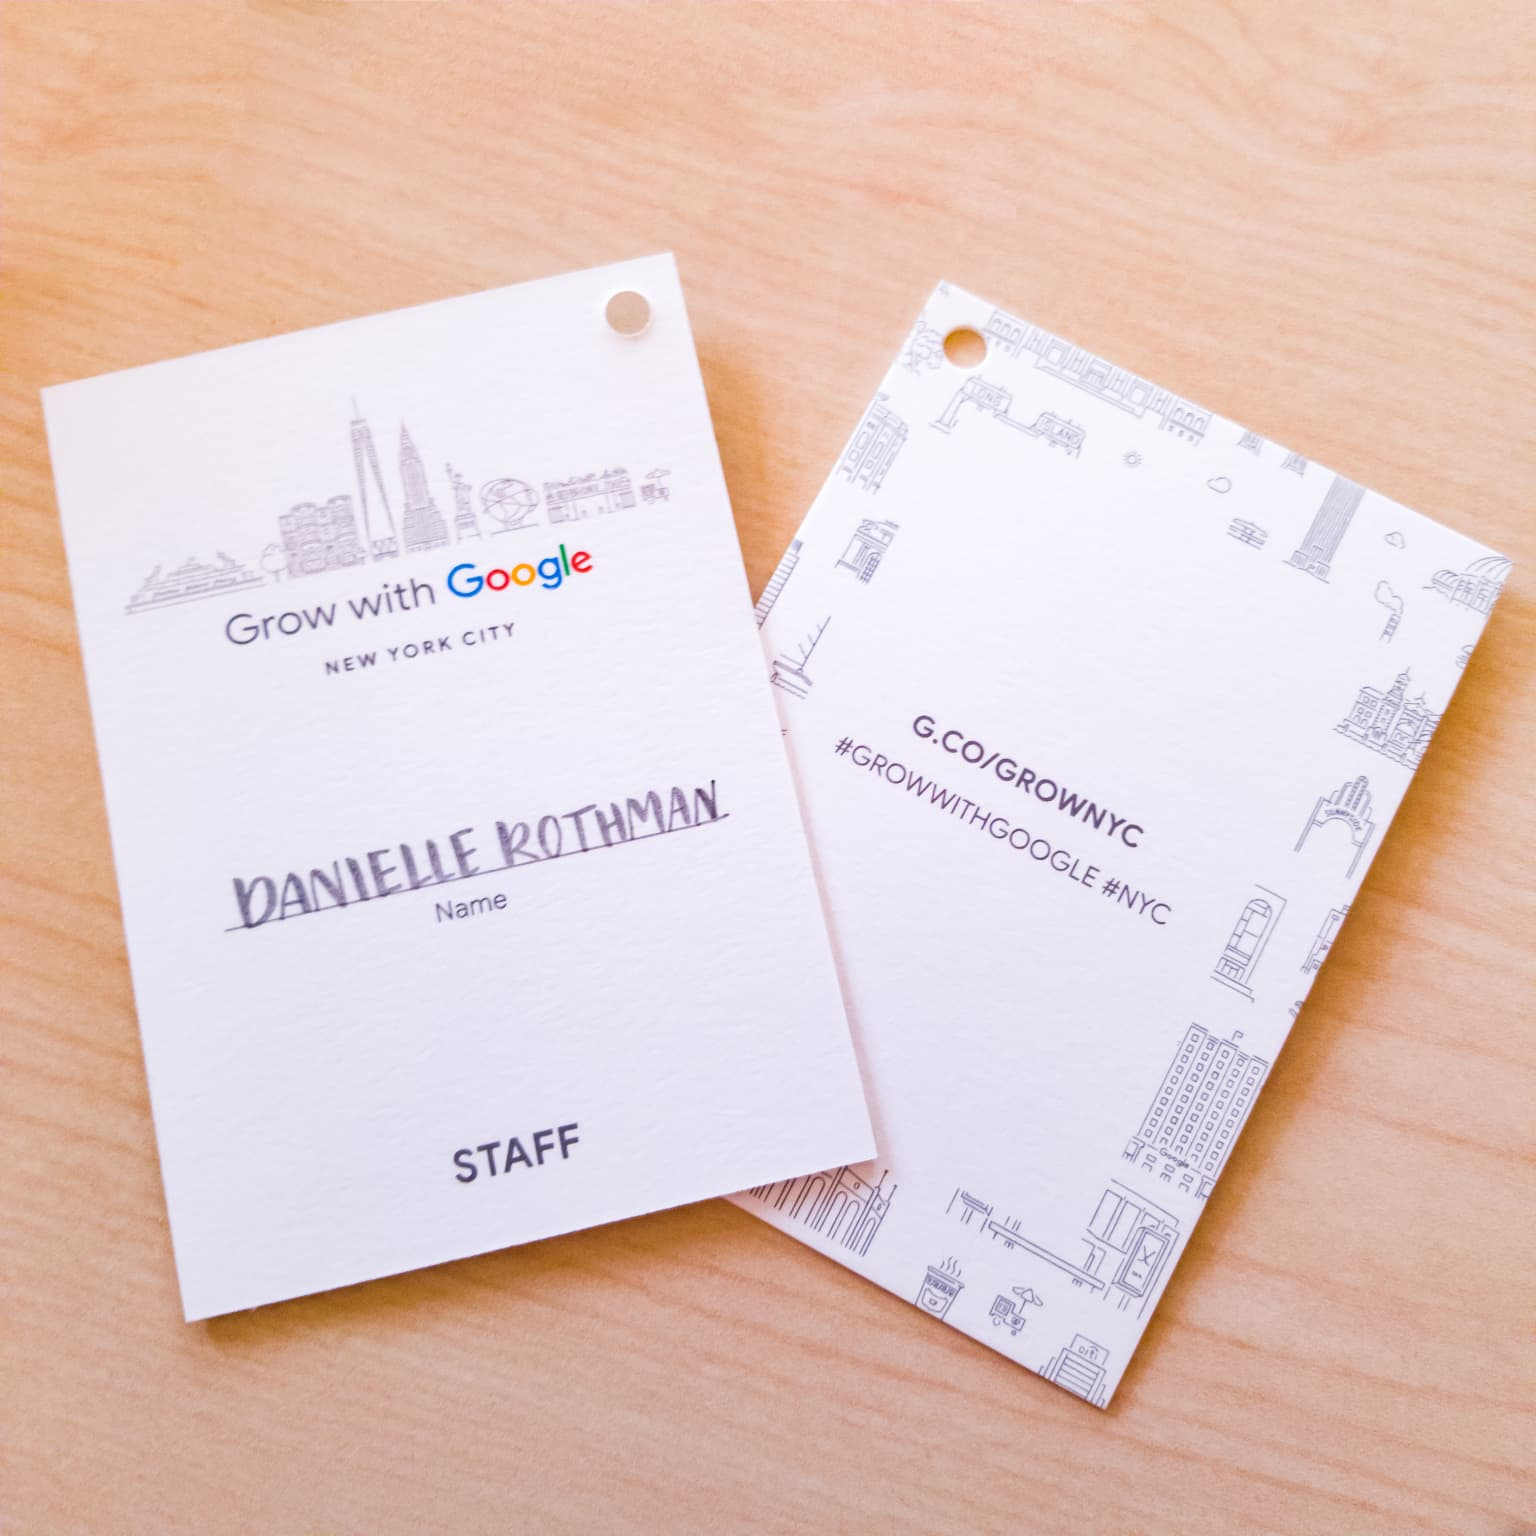 Grow with Google Launch Event Name Badges